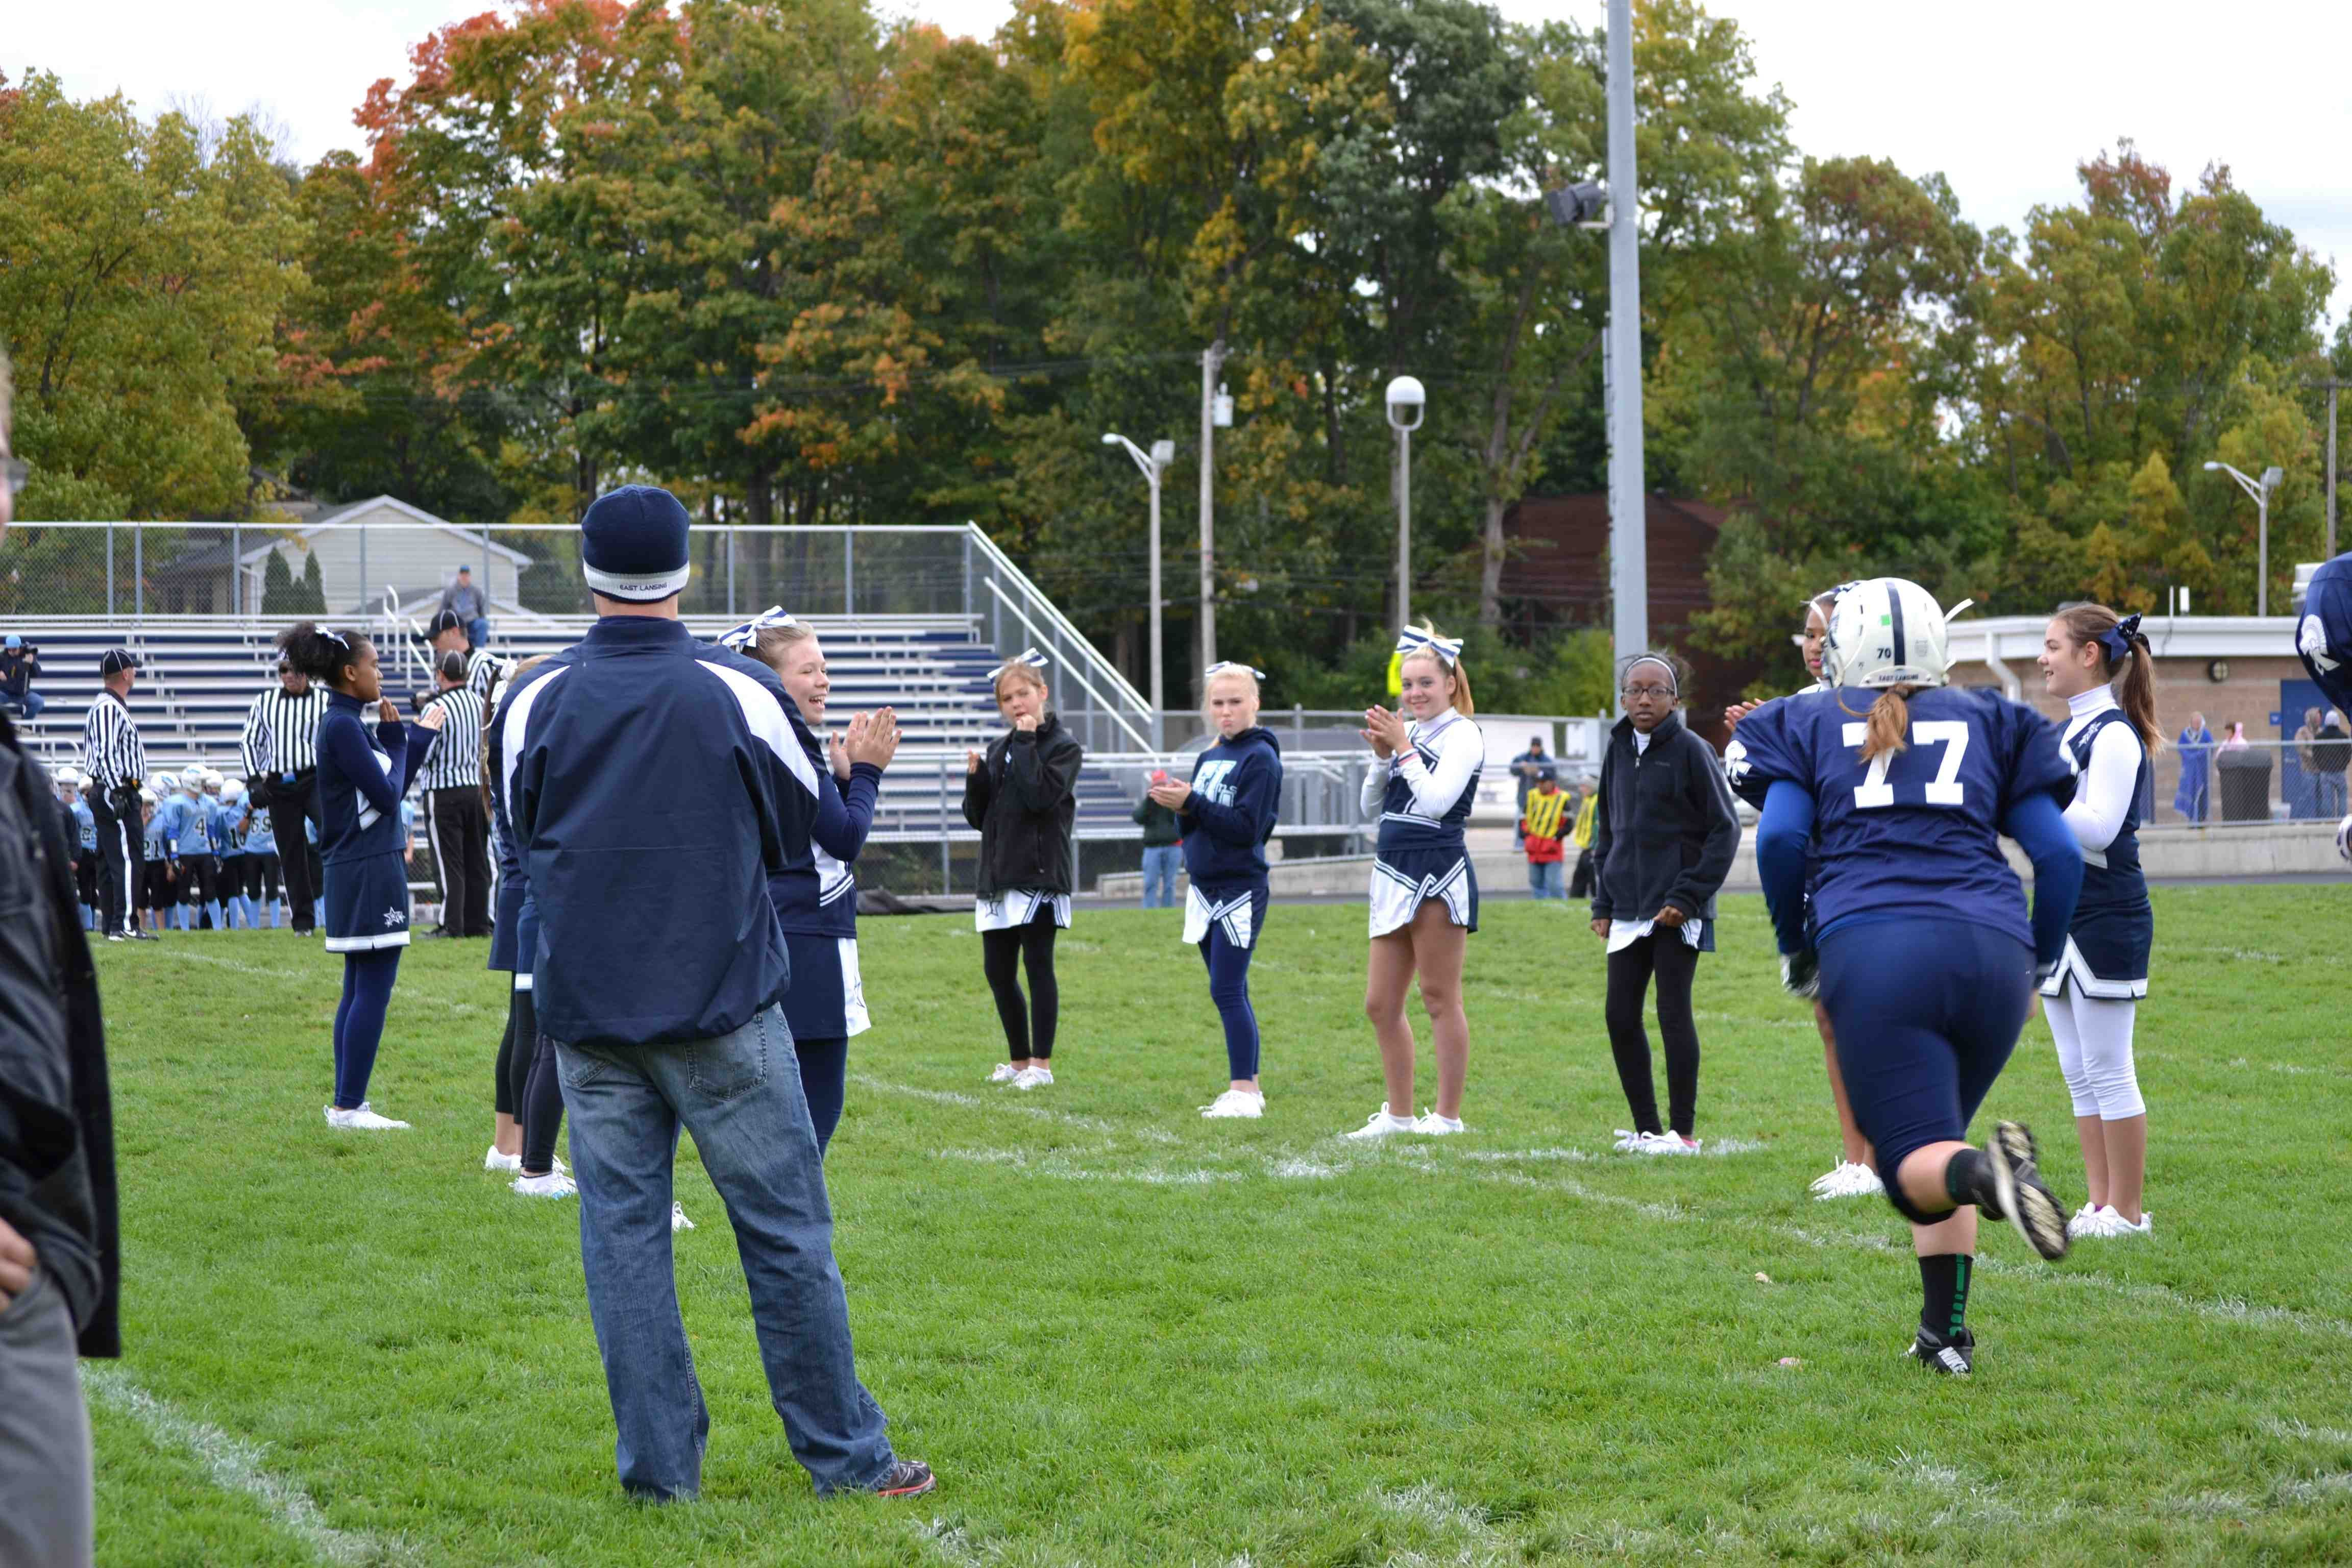 Eva runs onto the field as her name is called. Many of the cheerleaders are her friends.